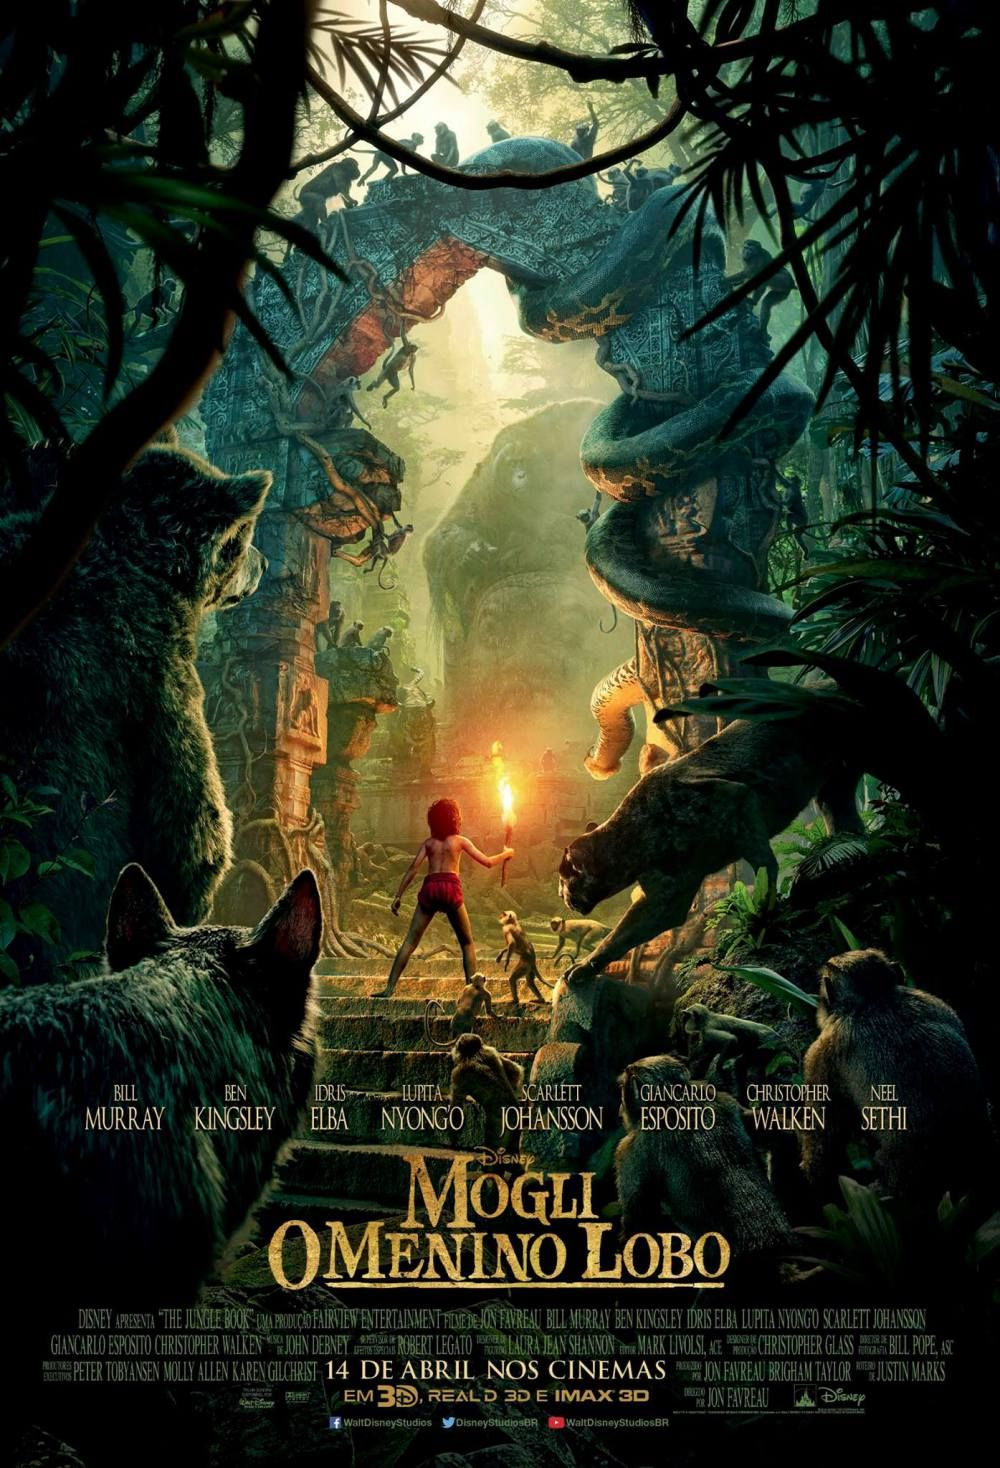 Mogli O Menino Lobo Resenha Critica Analise Livro Da Selva Disney The Jungle Book Filmes